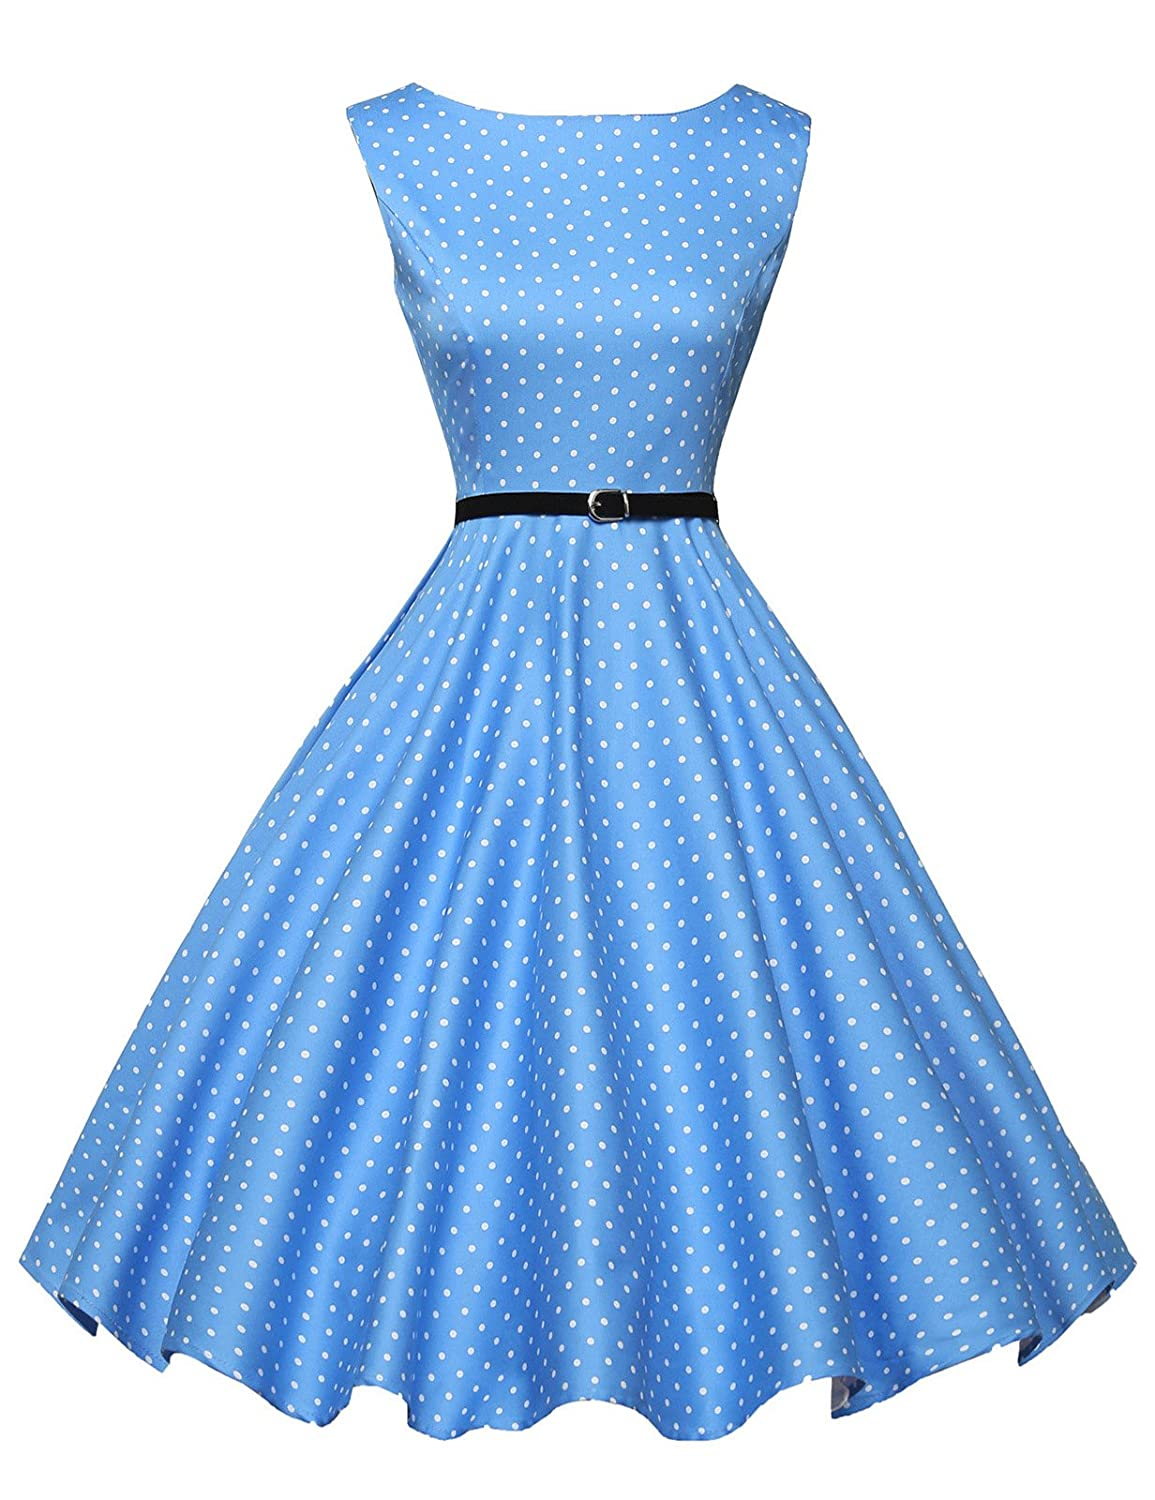 Rockabilly Dresses | Rockabilly Clothing | Viva Las Vegas GRACE KARIN BoatNeck Sleeveless Vintage Tea Dress with Belt $30.99 AT vintagedancer.com